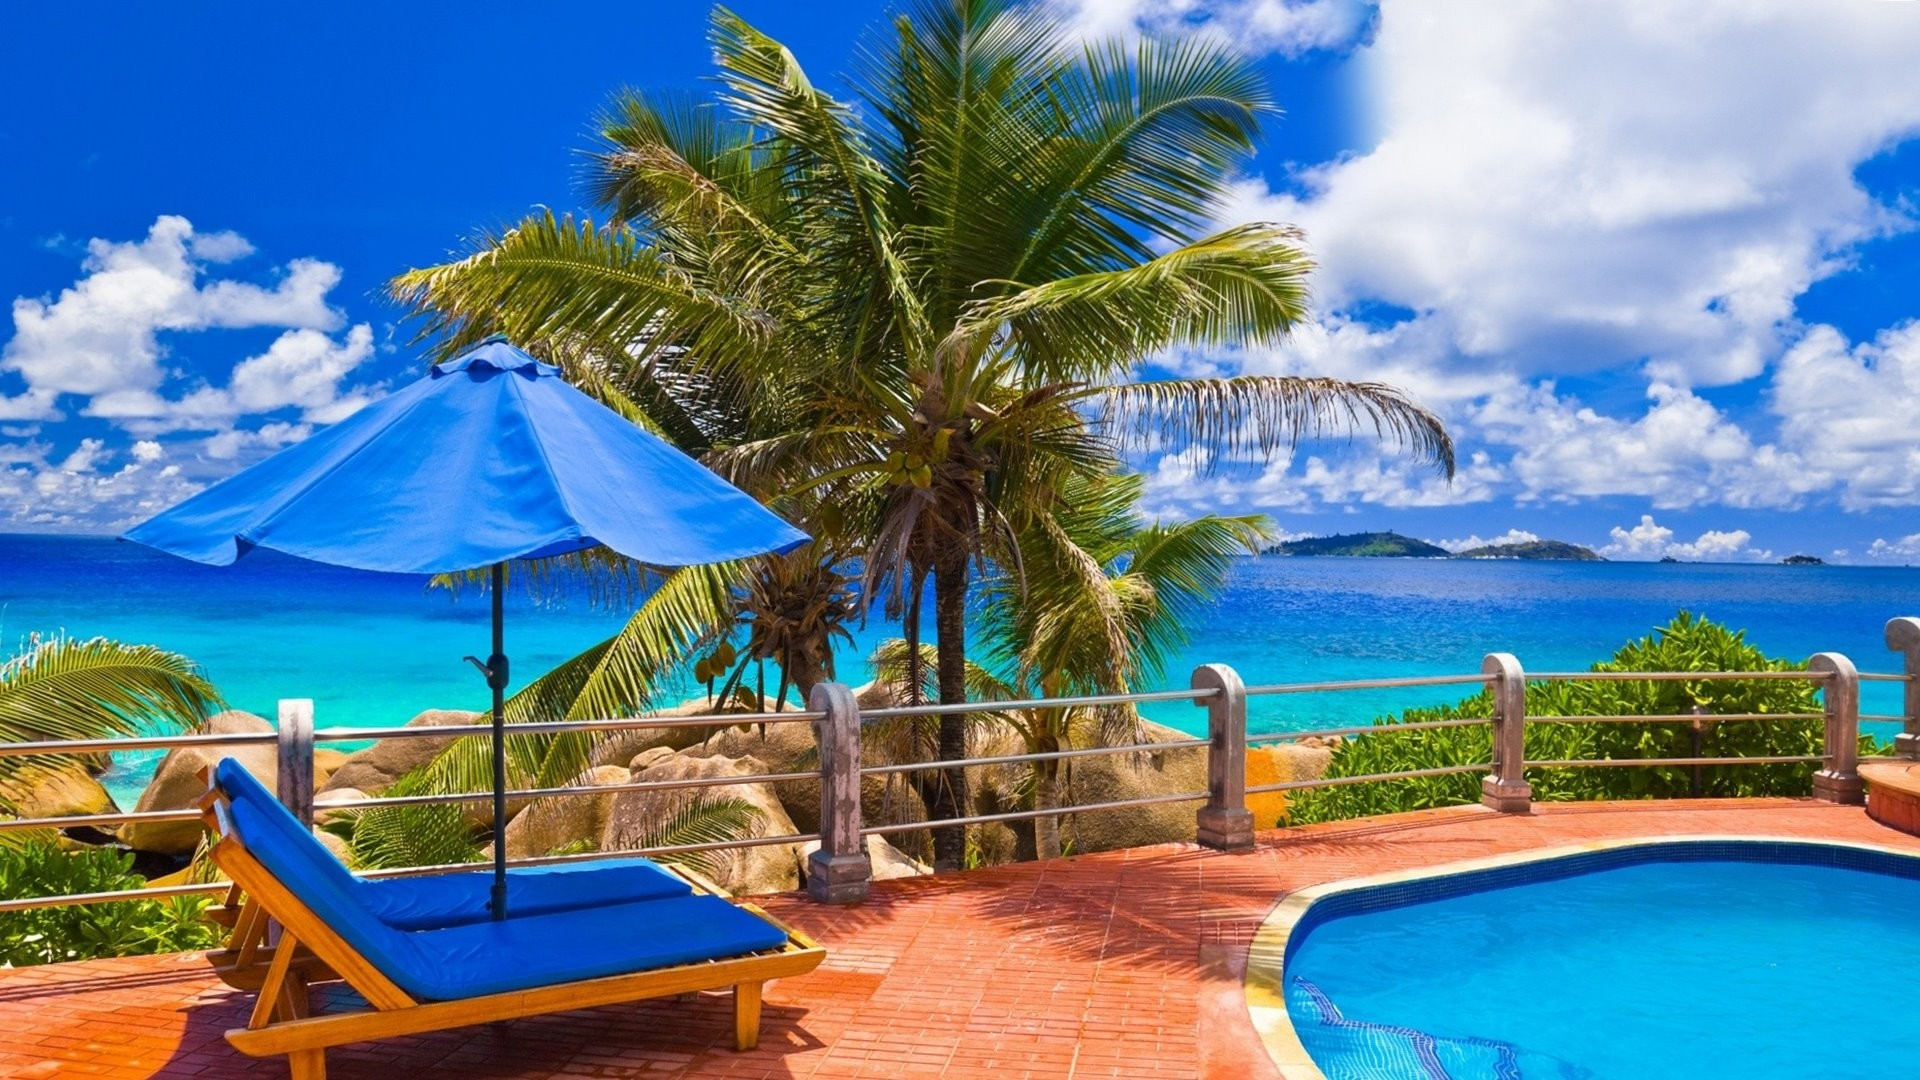 1920x1080 Beach-Resort-Nice-Background-Pick.com-wallpaper-wpt7402370